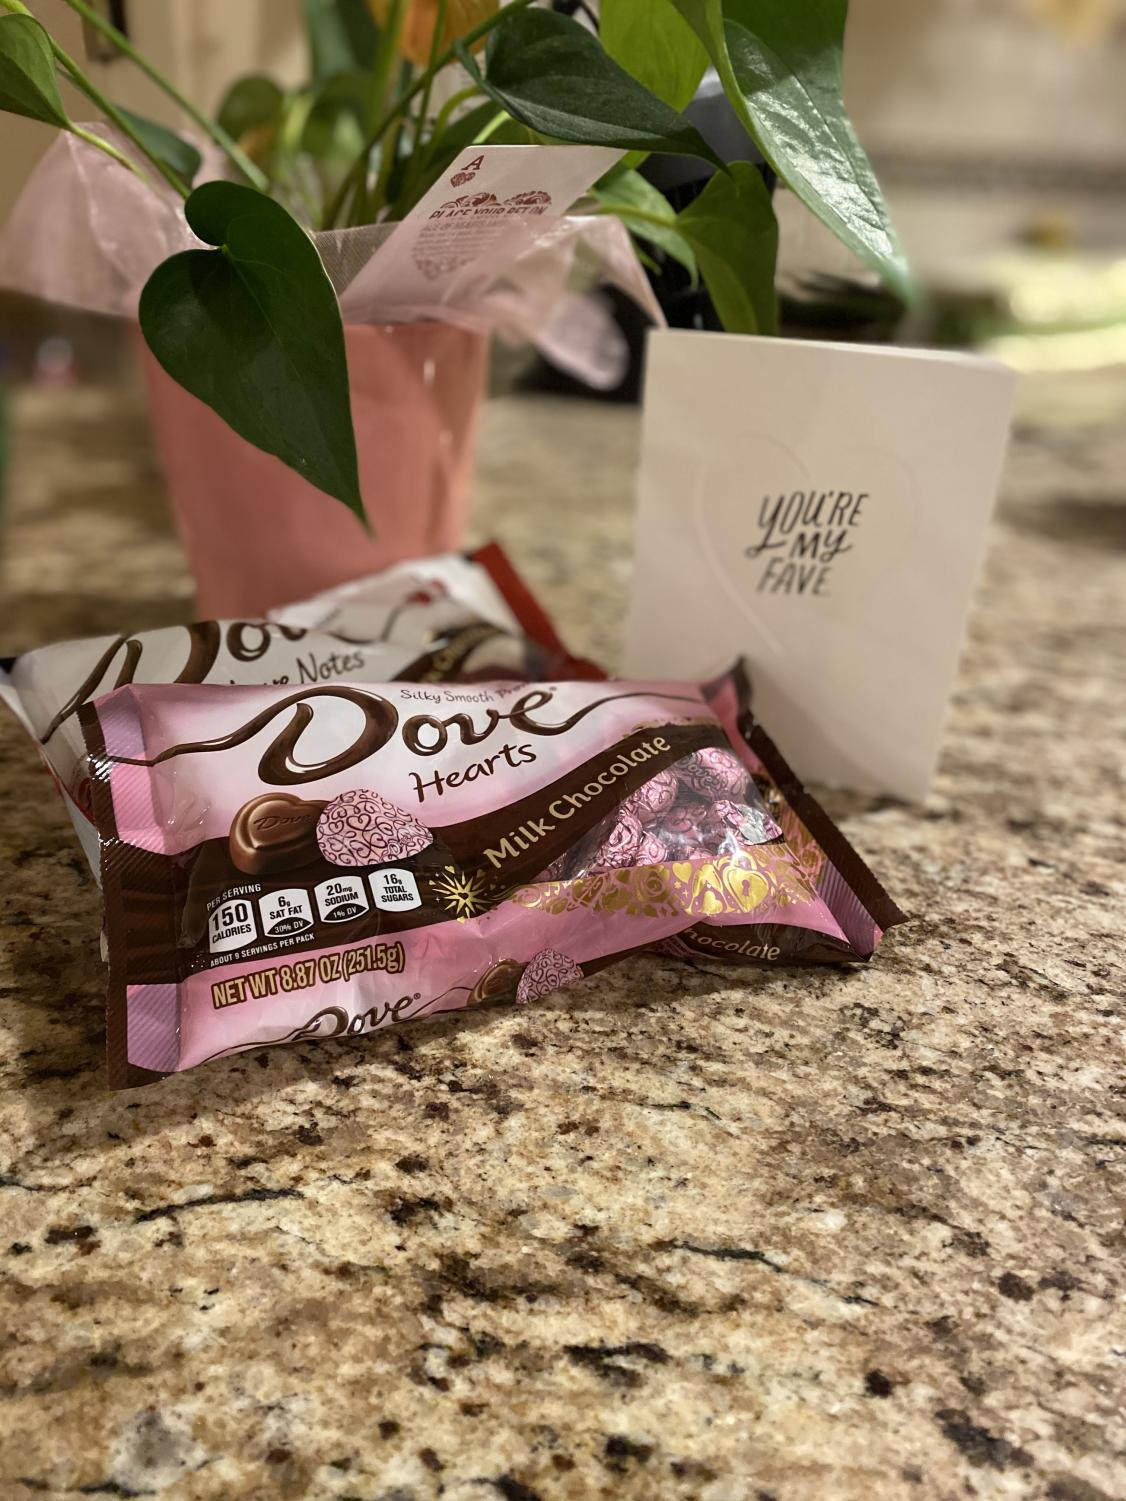 Dove chocolates are the perfect treat for both you and your friends to enjoy on Valentines Day.